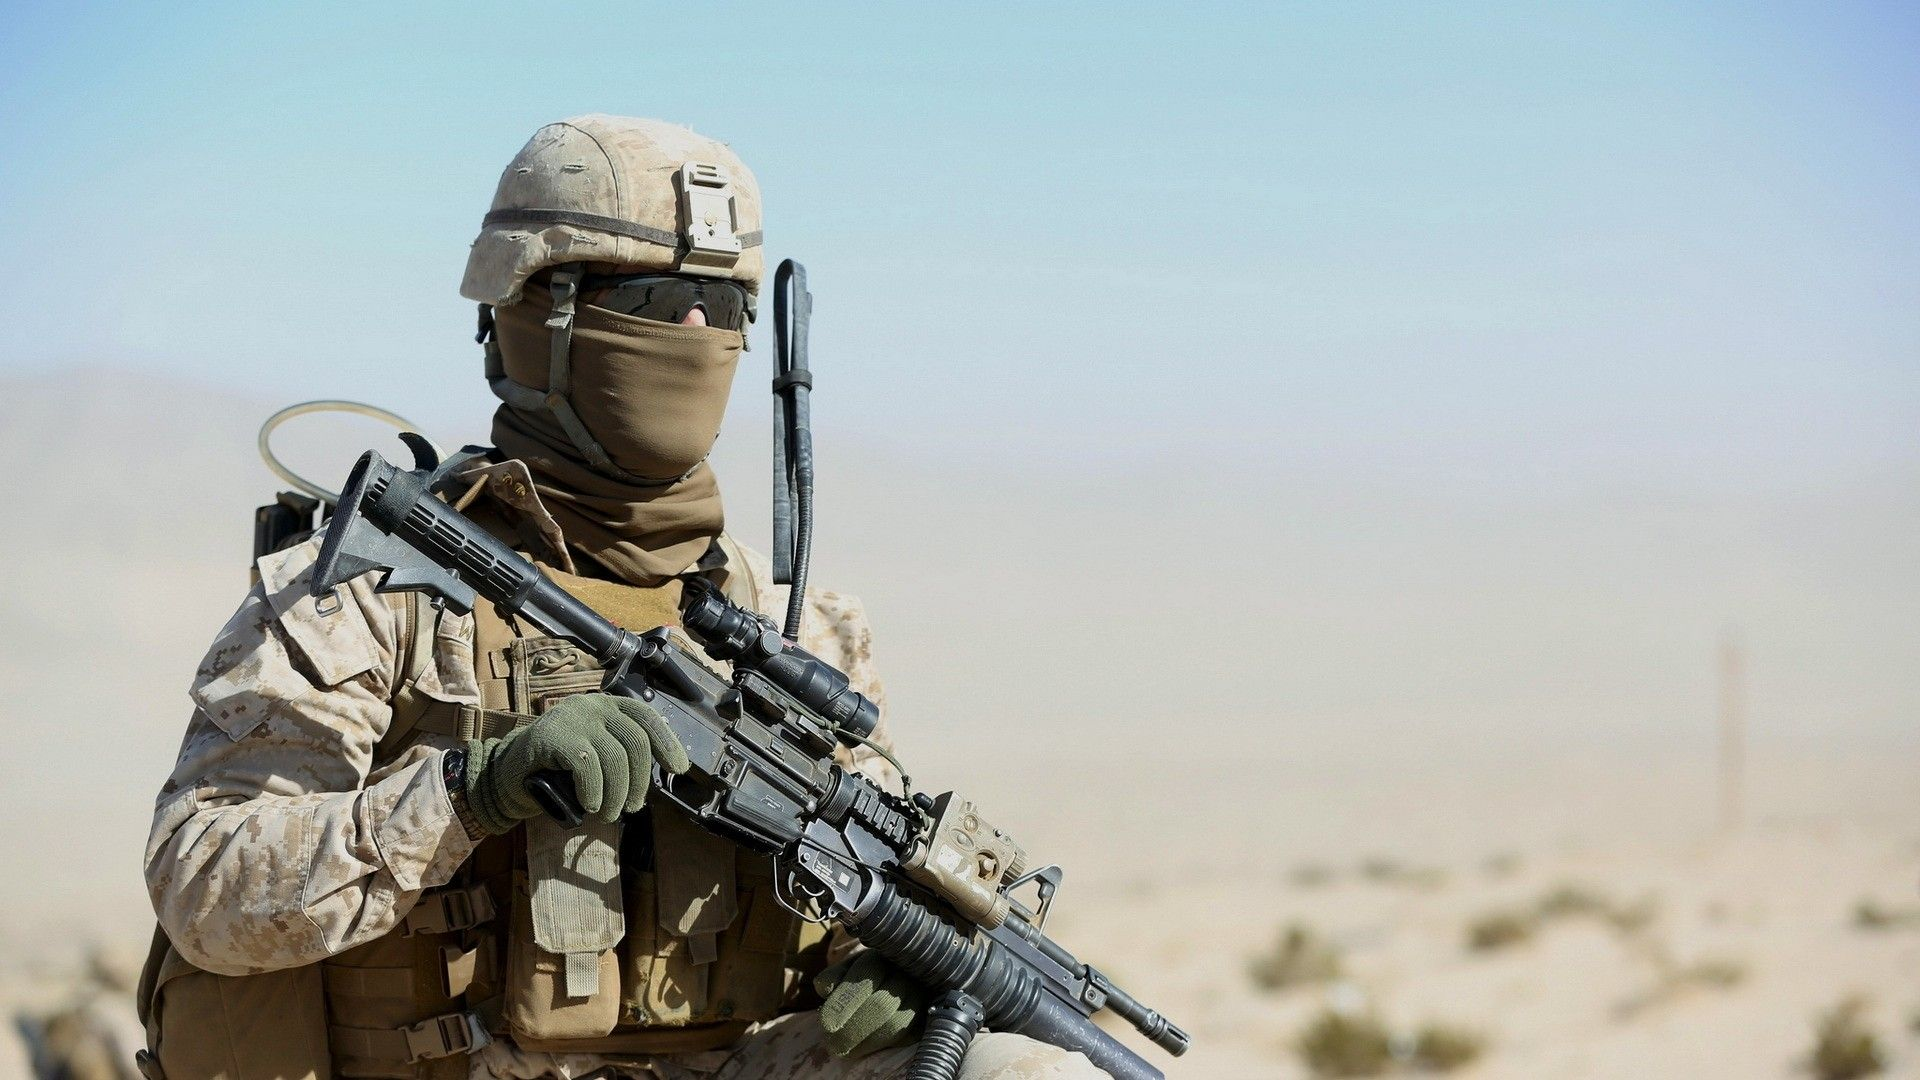 Hd Military Wallpapers Top Free Hd Military Backgrounds